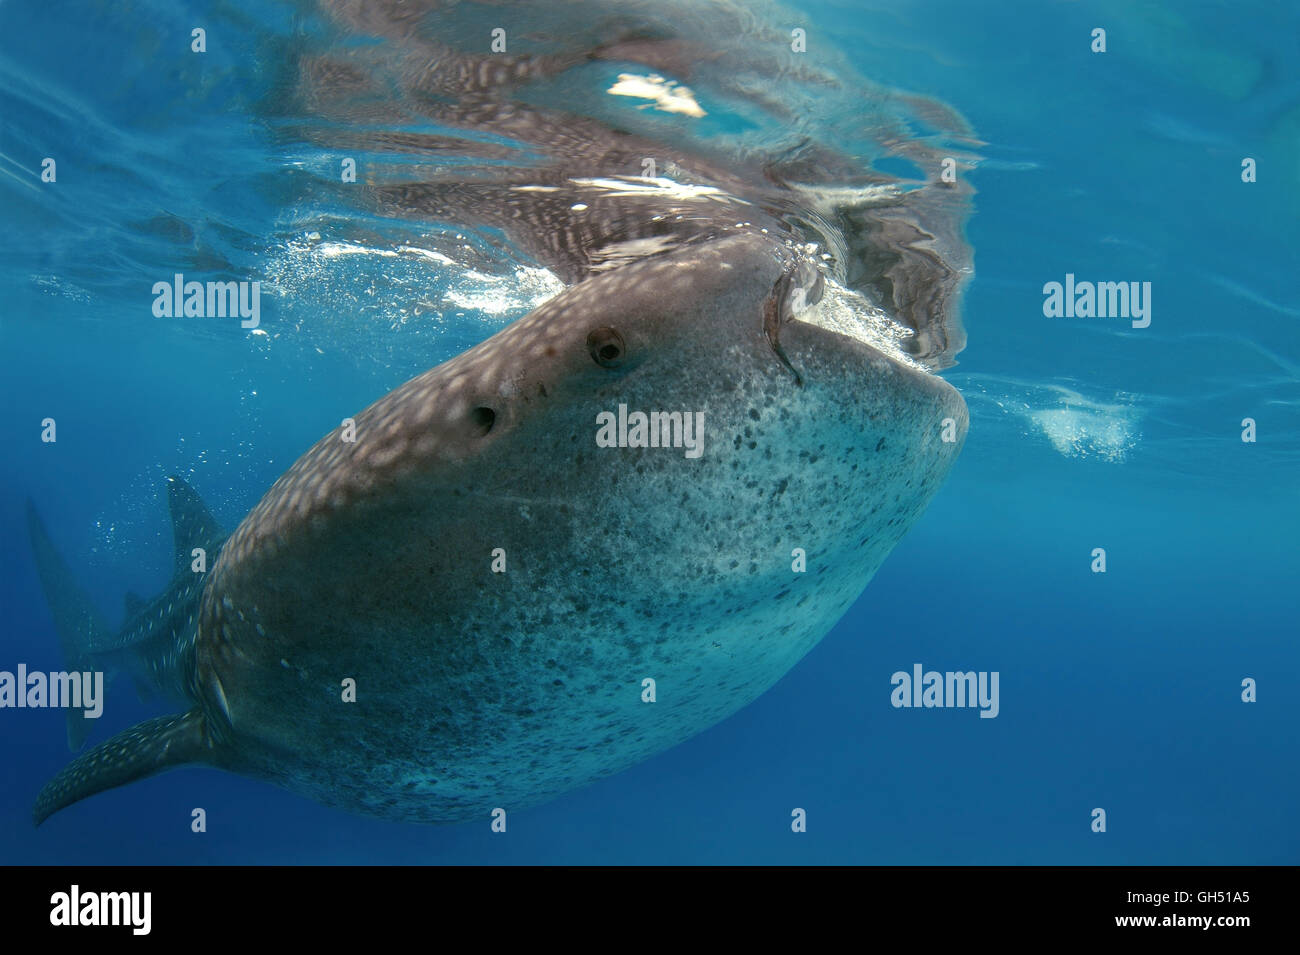 Whale shark or basking shark (Rhincodon typus) eats plankton, Indo-Pacific, Philippines, Southeast Asia - Stock Image